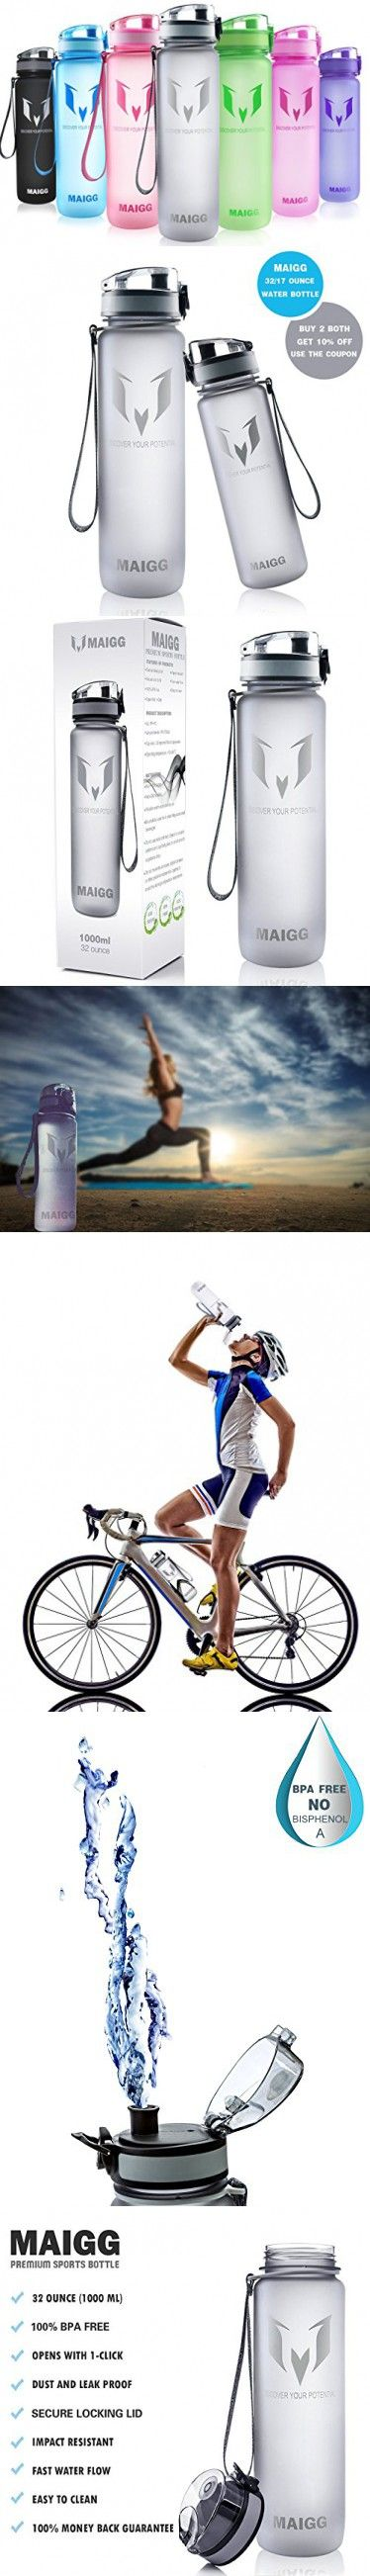 MAIGG Best Sports Water Bottle - 32oz- Eco Friendly & BPA-Free Plastic - For Running, Gym, Yoga, Outdoors and Camping - Fast Water Flow, Flip Top, Opens With 1-Click - Reusable with Leak-proof Lid